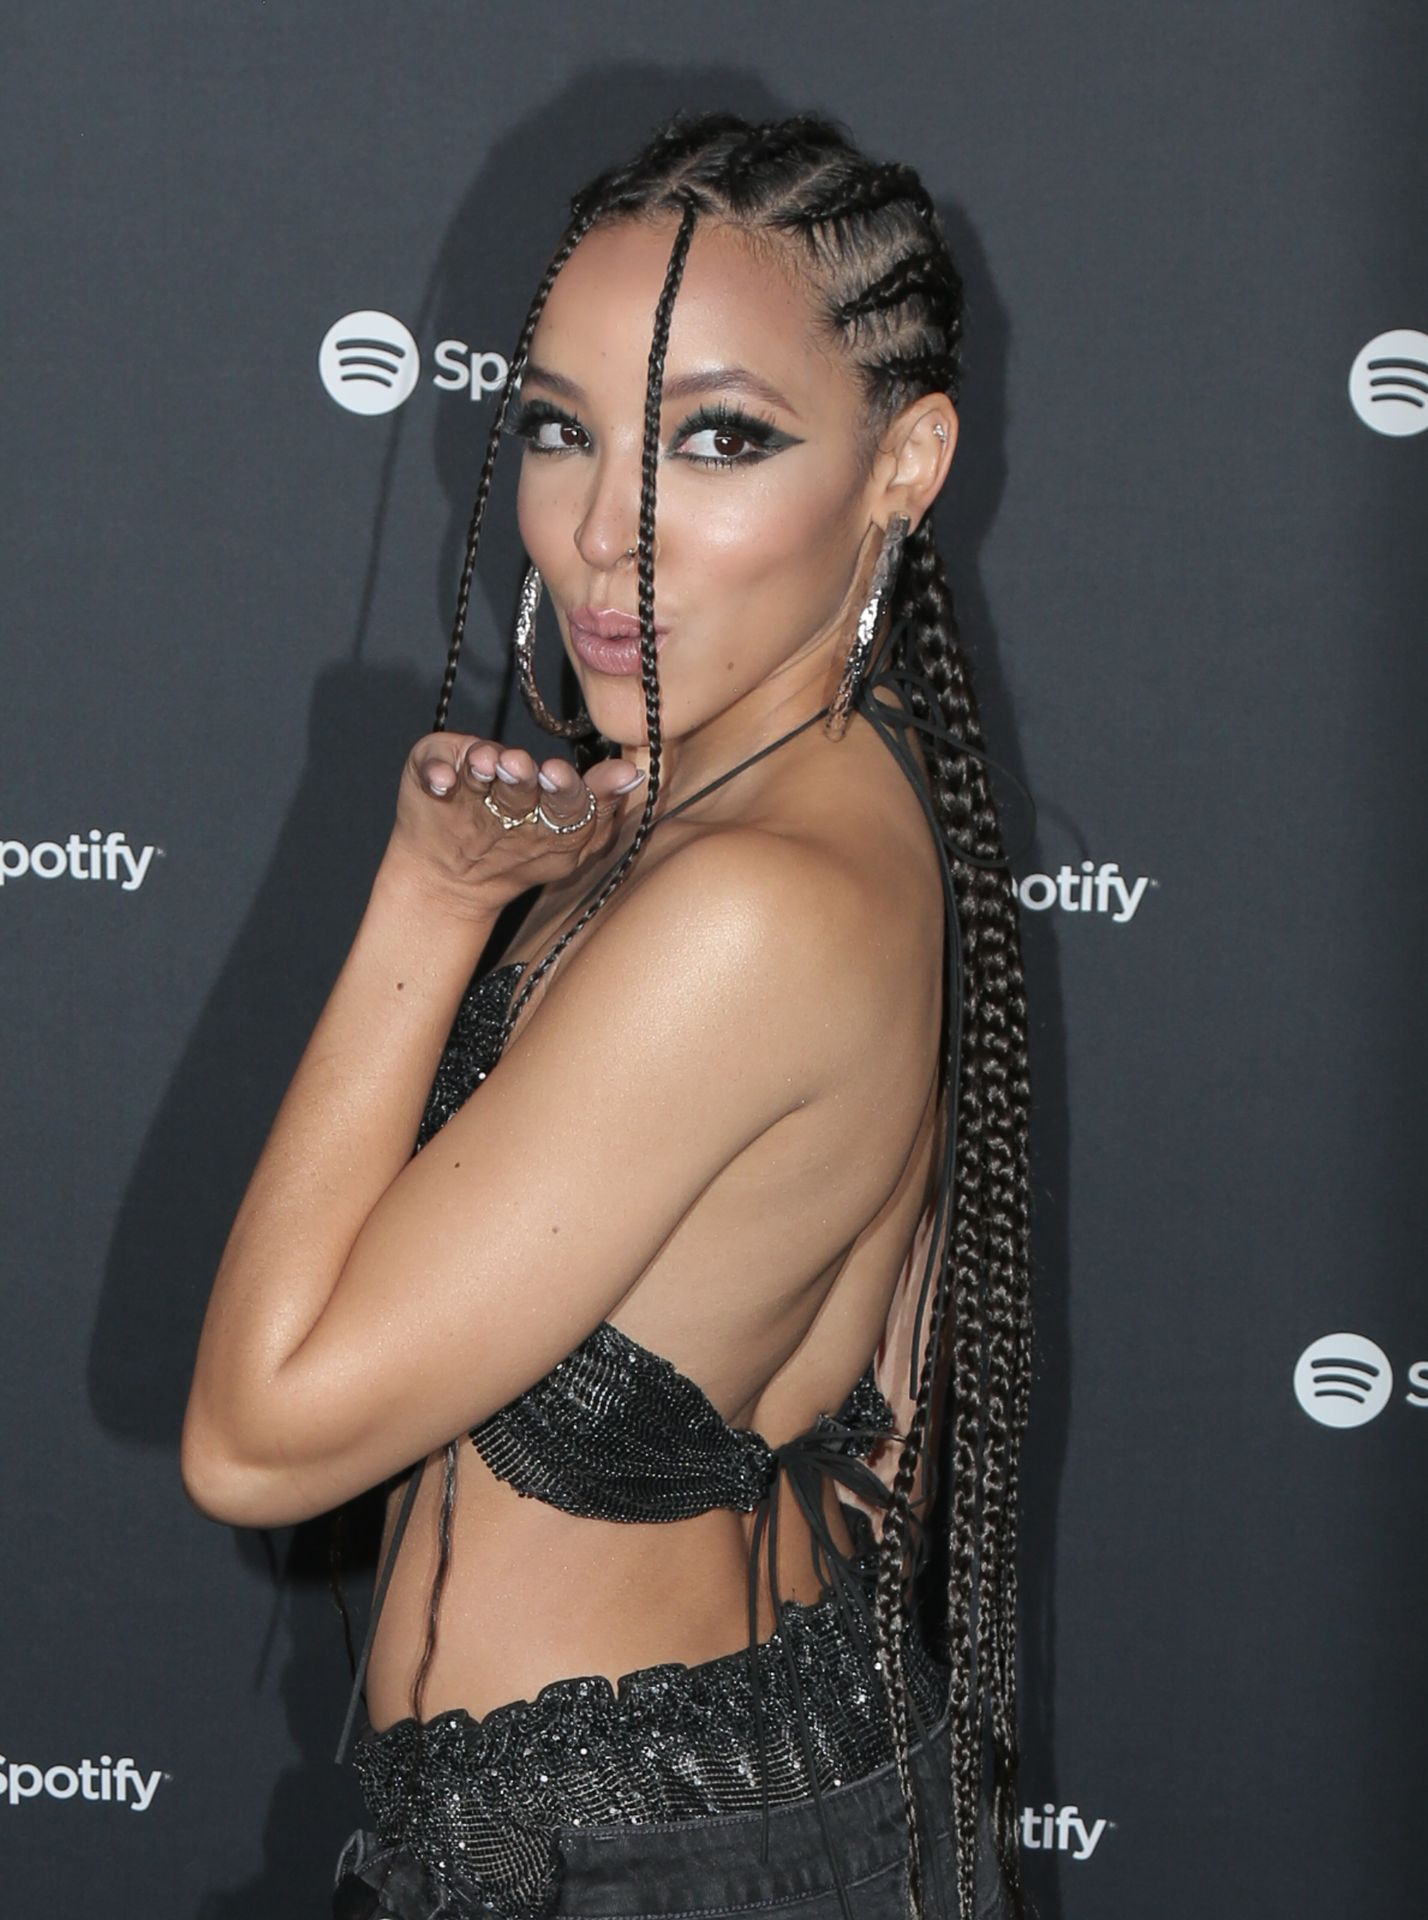 Tinashe Flaunts Her Tits At The Spotify Best New Artist Party 0033